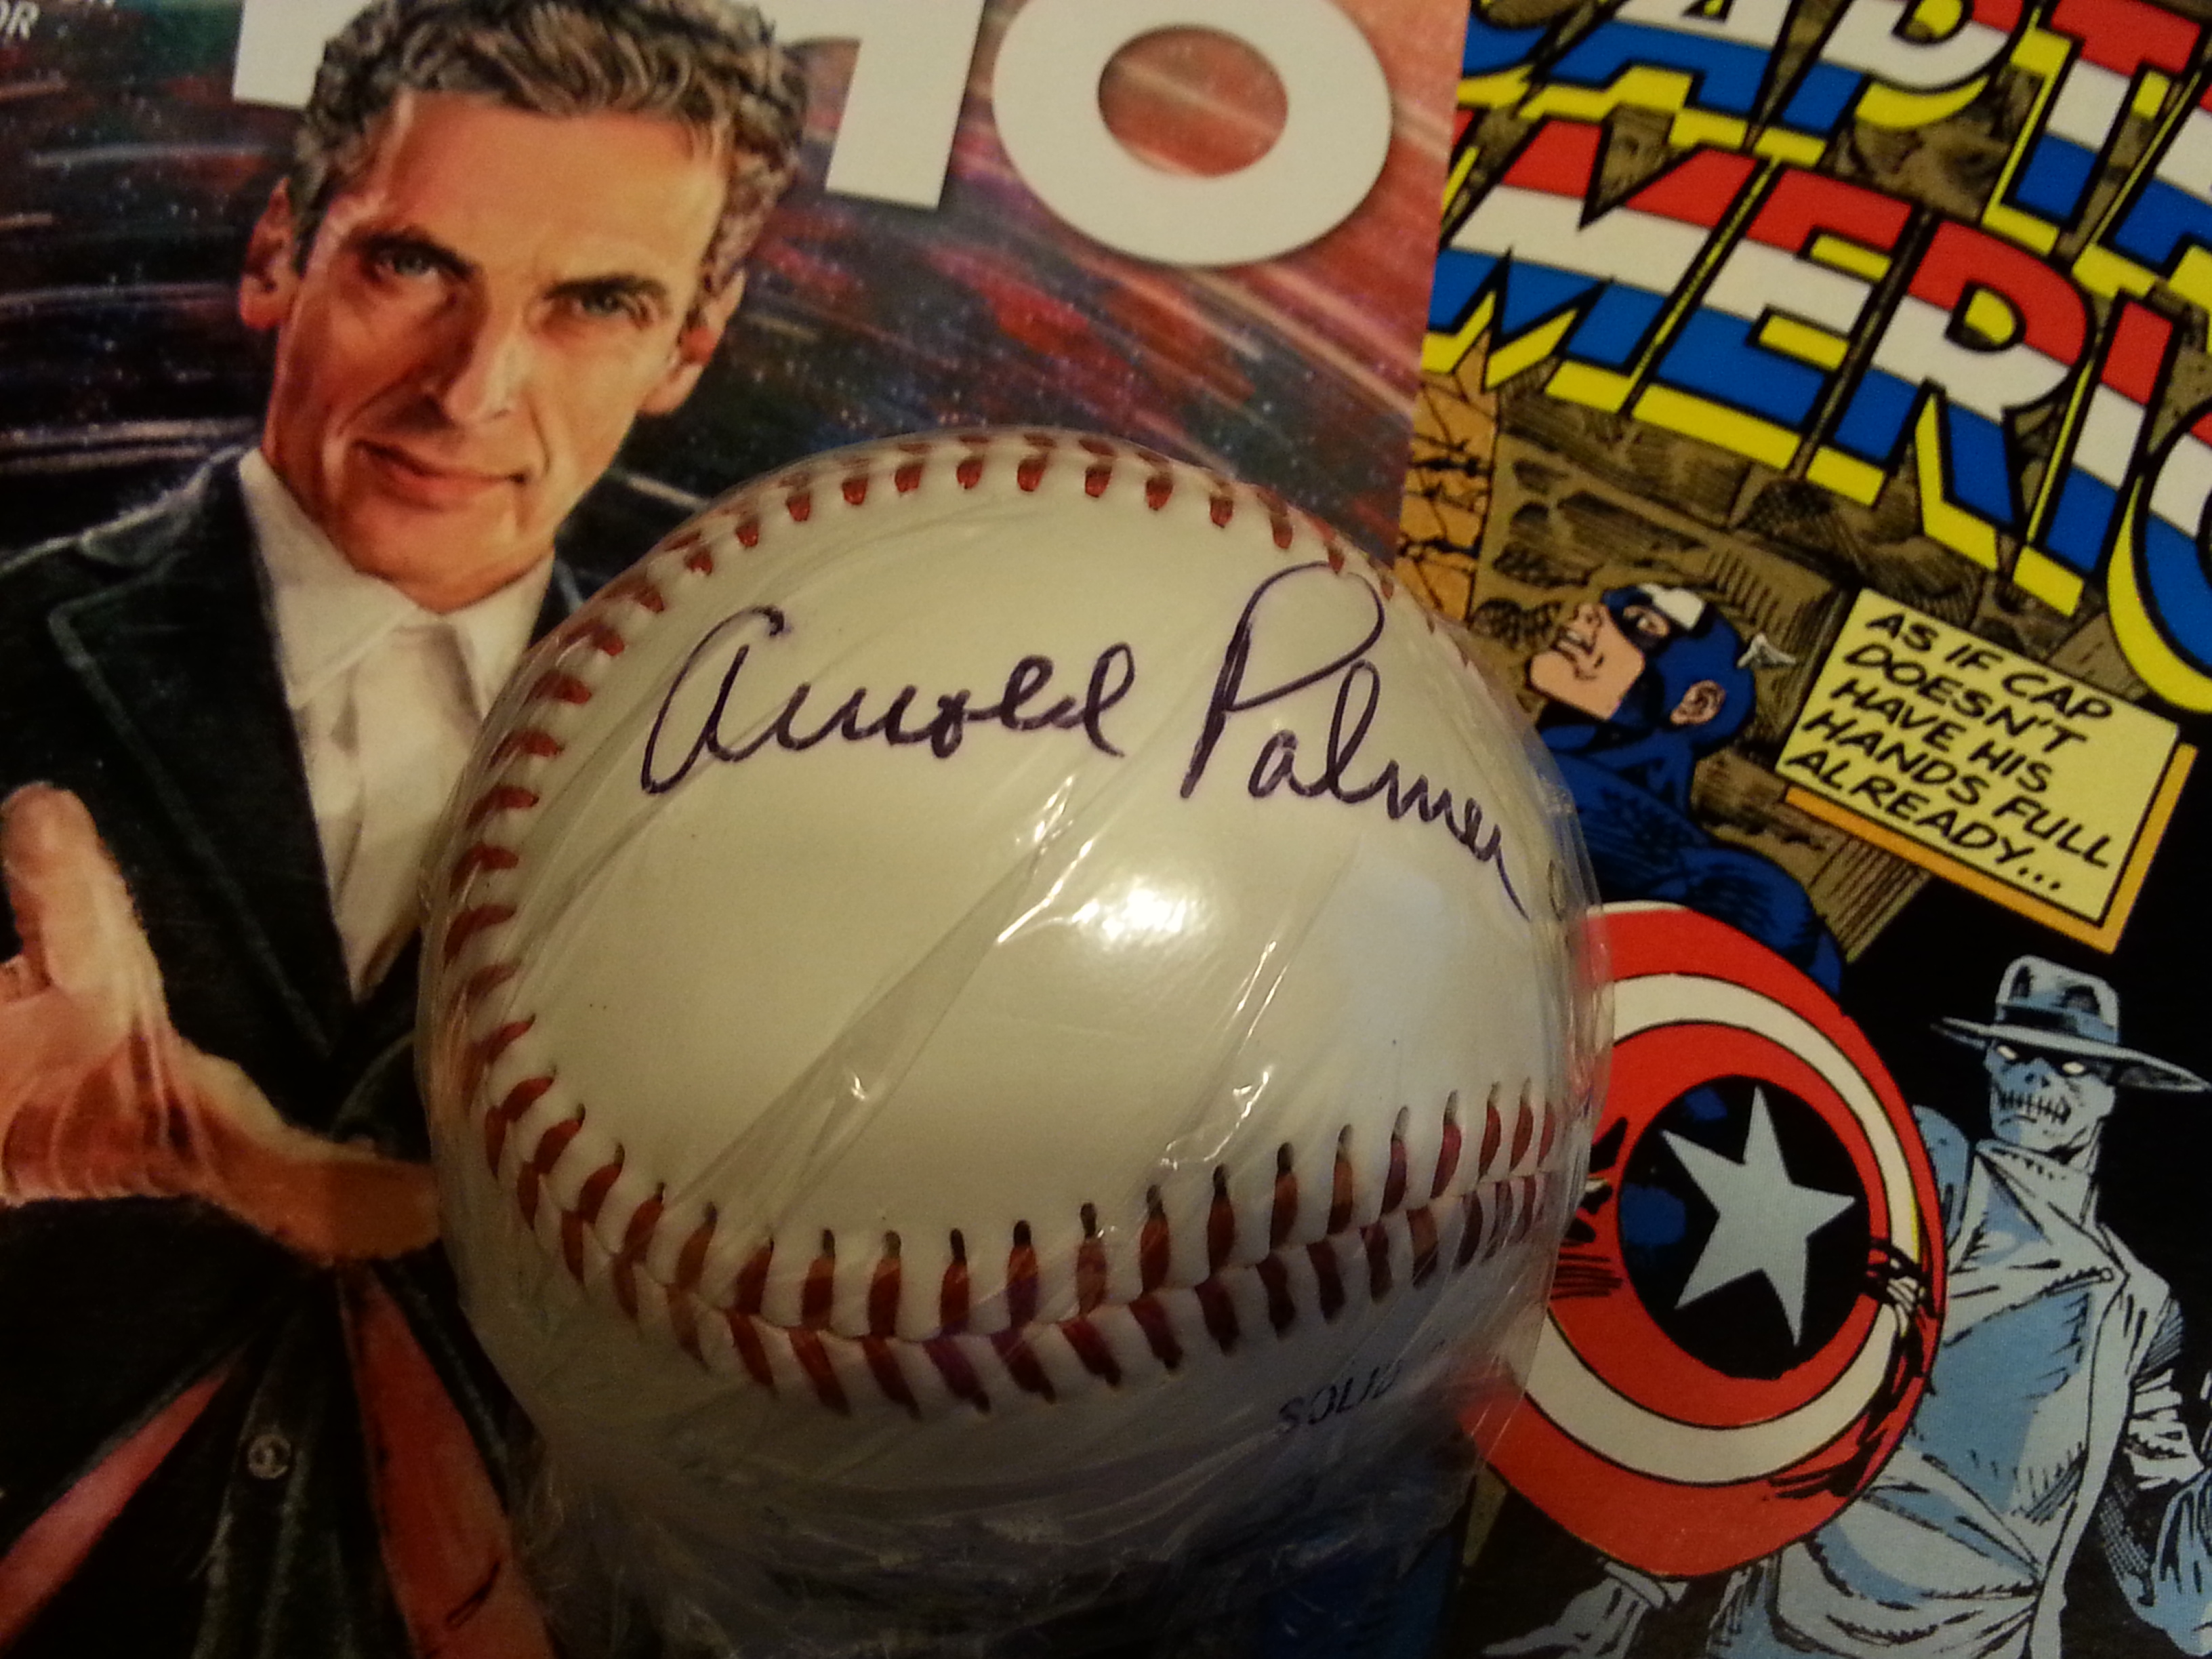 Collectibles That Are Worthless Arnold Palmer Signed Baseball